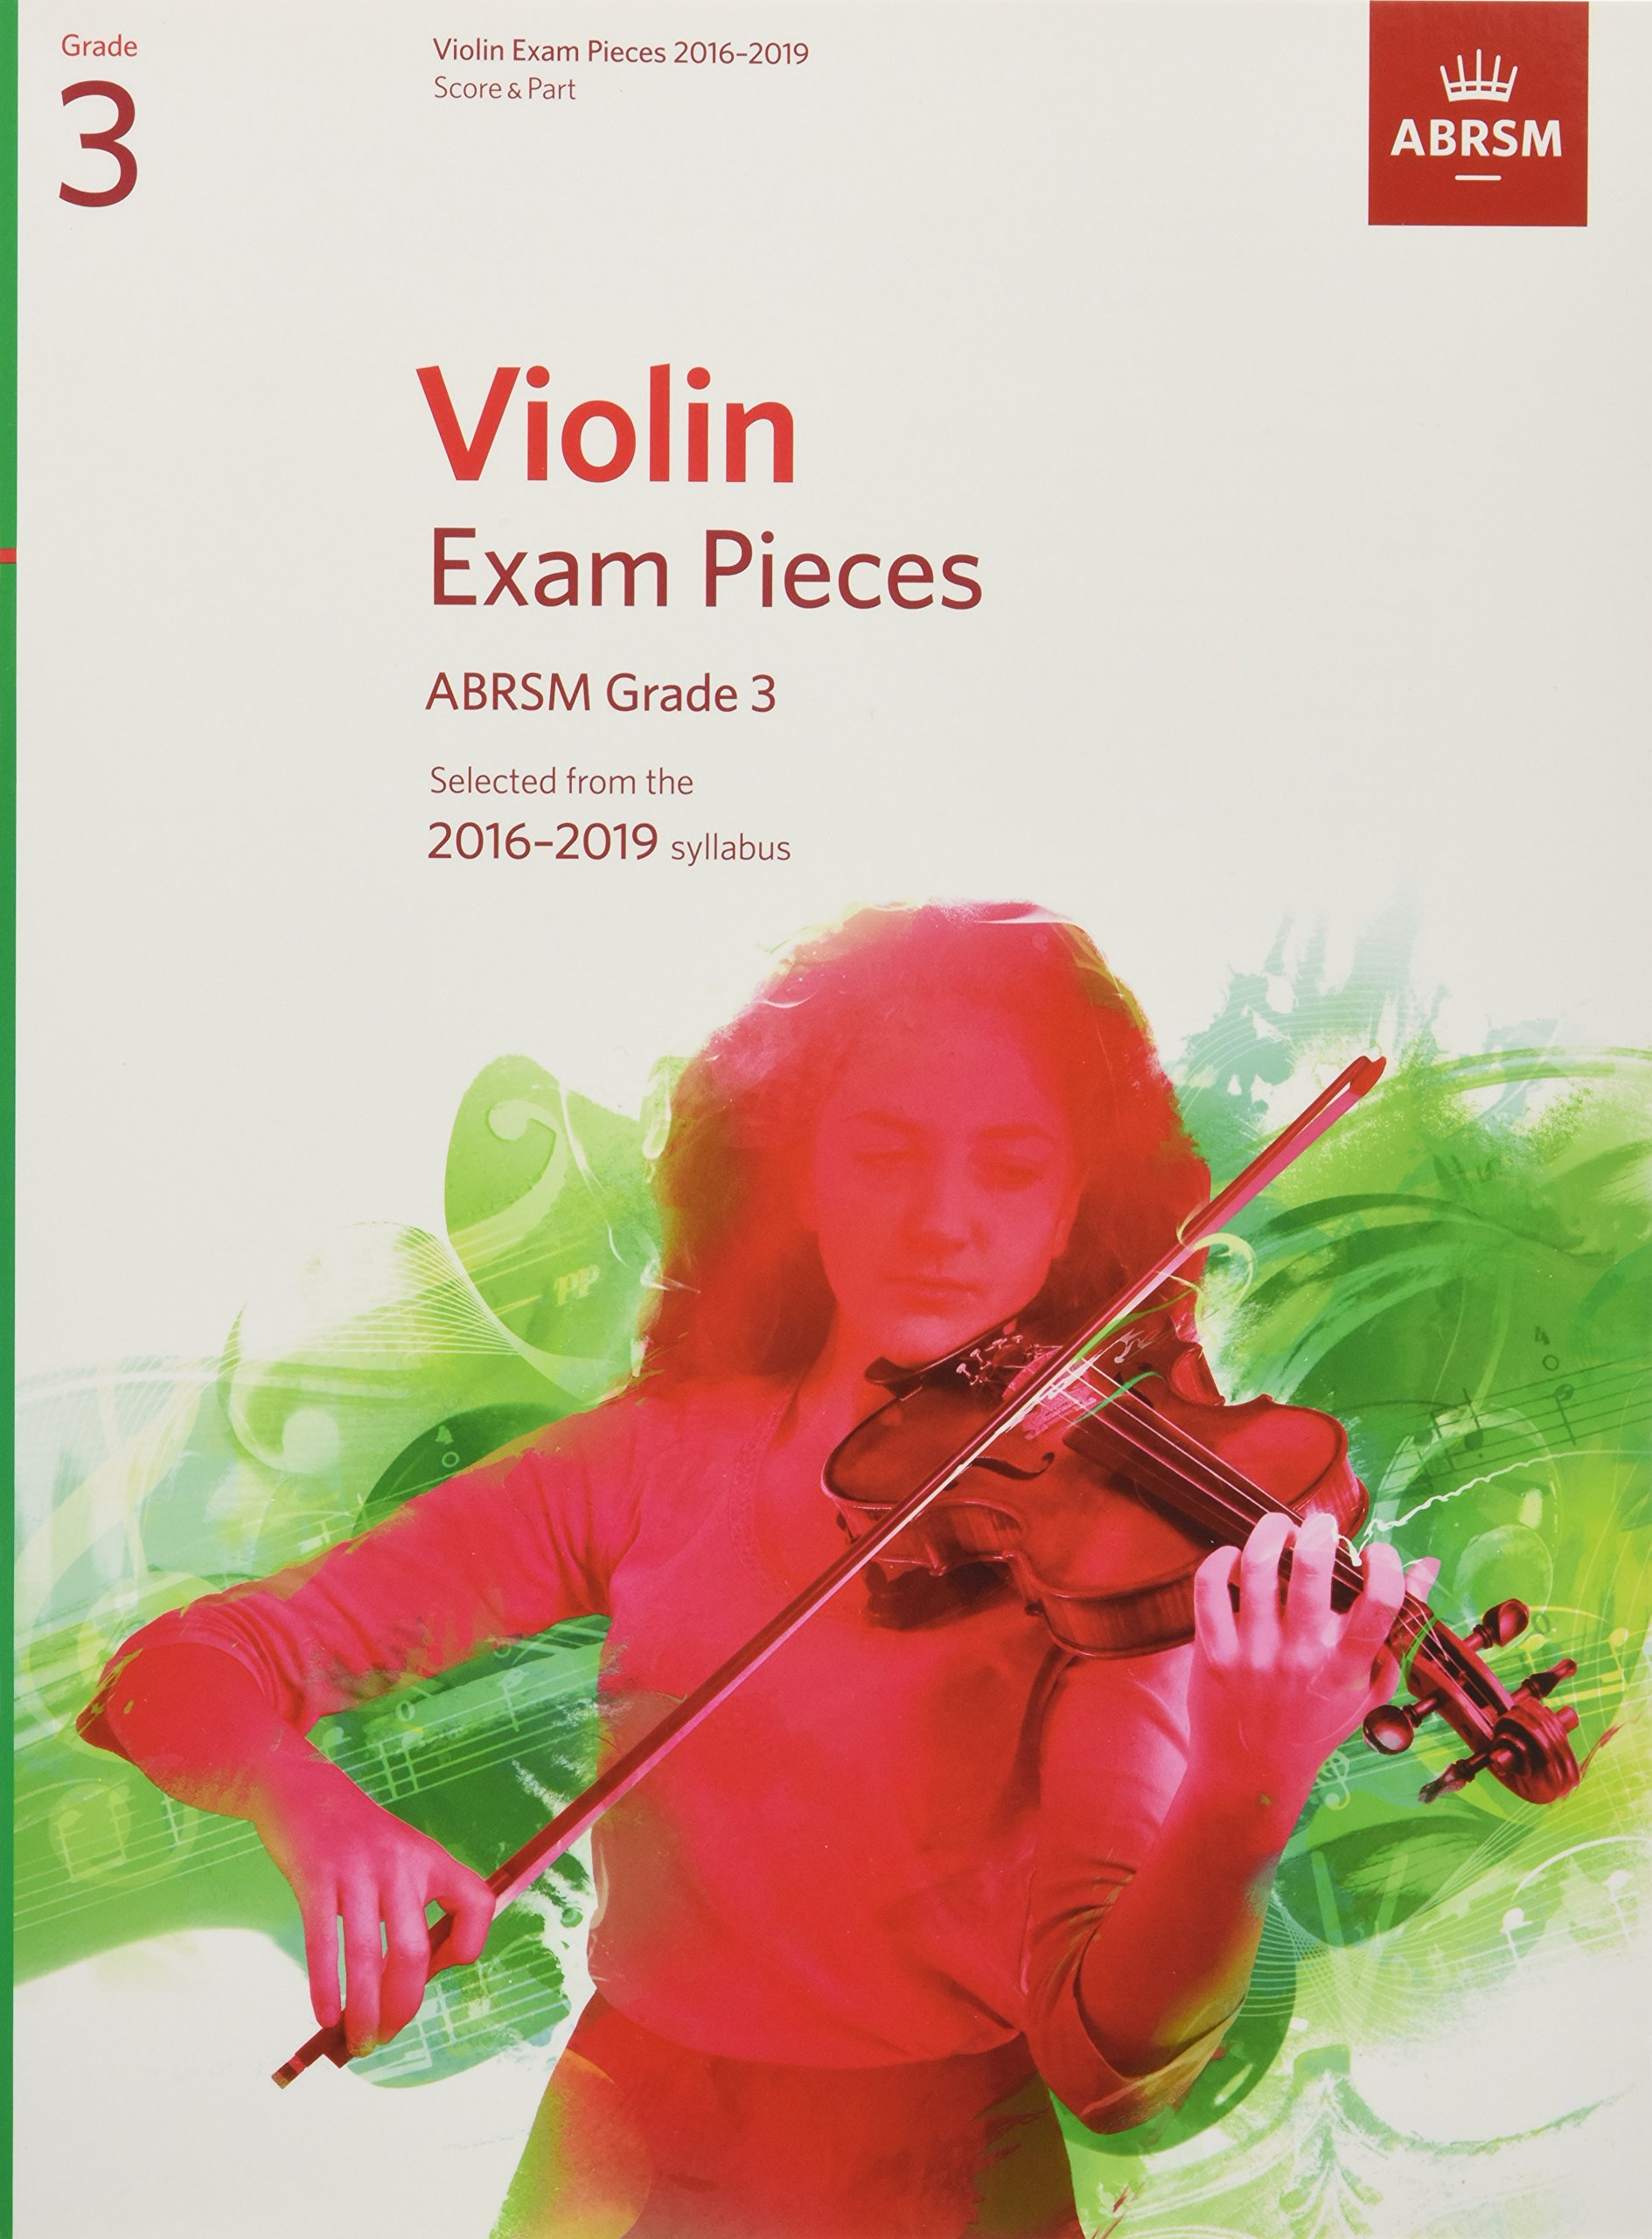 Violin Exam Pieces 2016-2019, ABRSM Grade 3, Score & Part: Selected from the 2016-2019 syllabus (ABRSM Exam Pieces) PDF